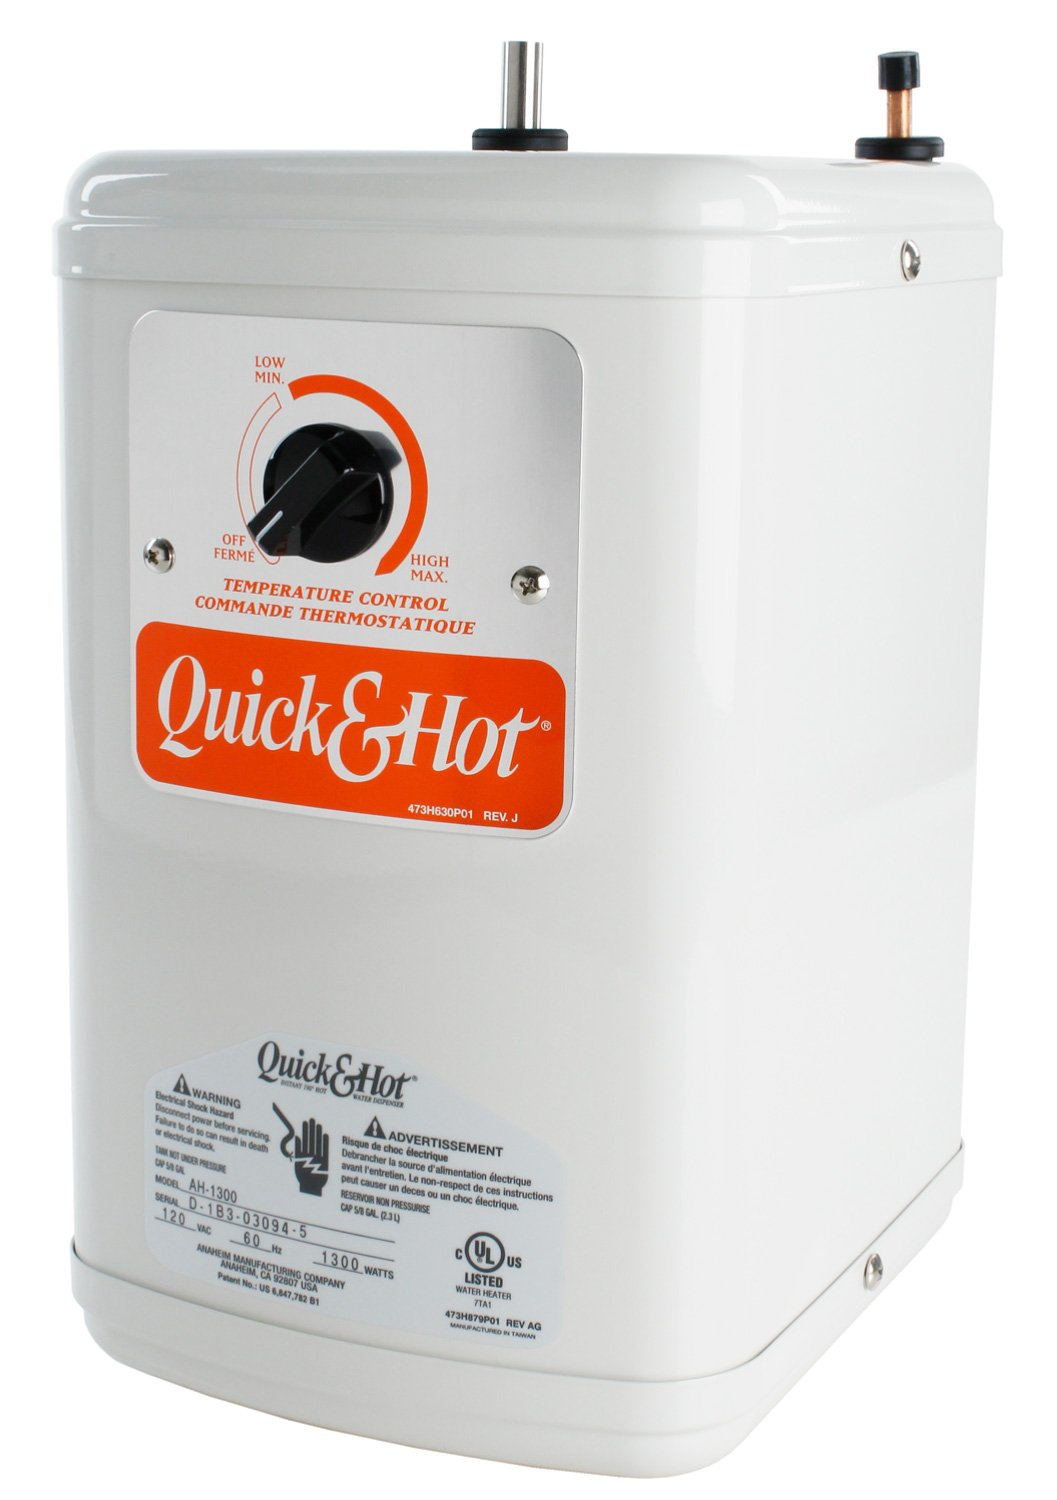 Anaheim AH-1300 Quick and Hot Instant Hot Water Tank - Hot Water ...